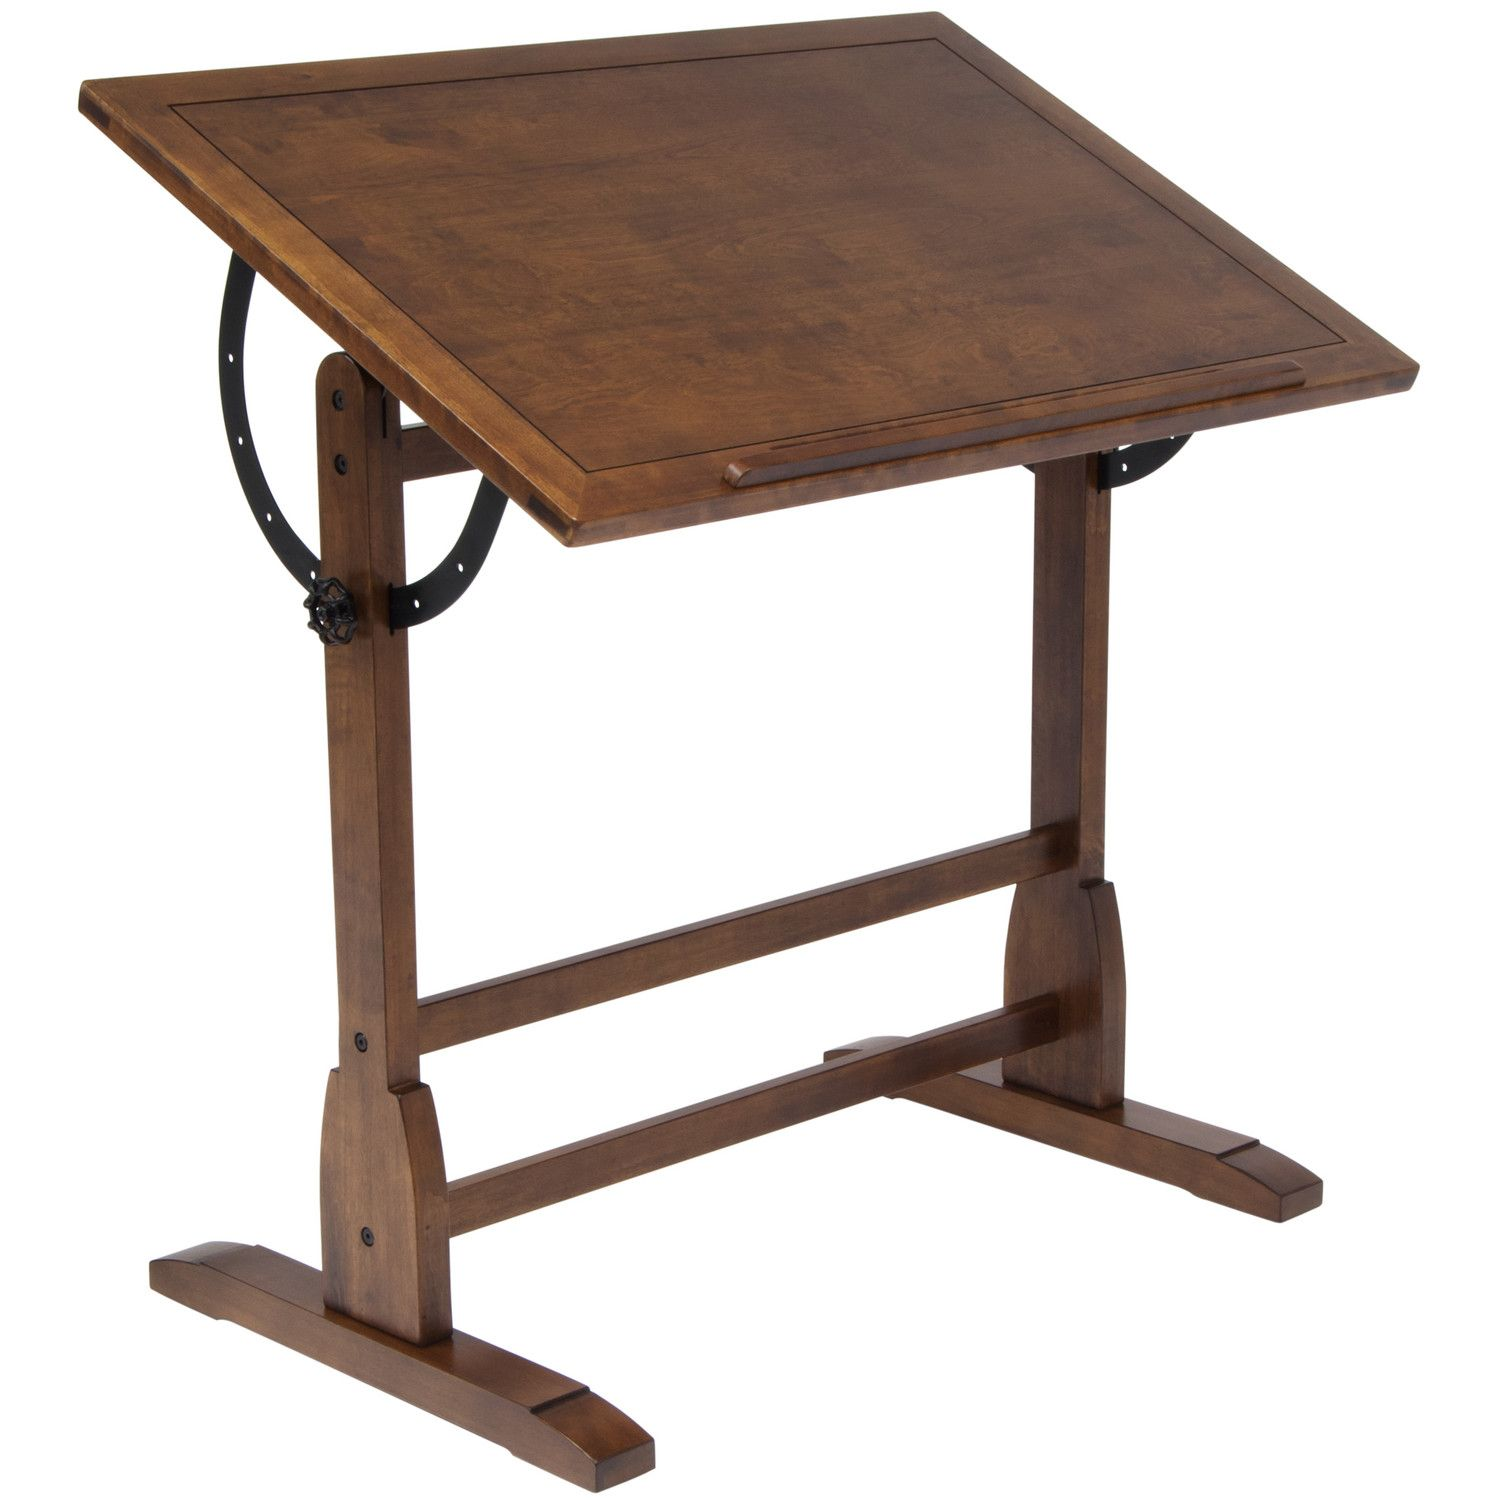 Vintage Drafting Table Vintage Drafting Table Wood Drafting Table Drafting Table